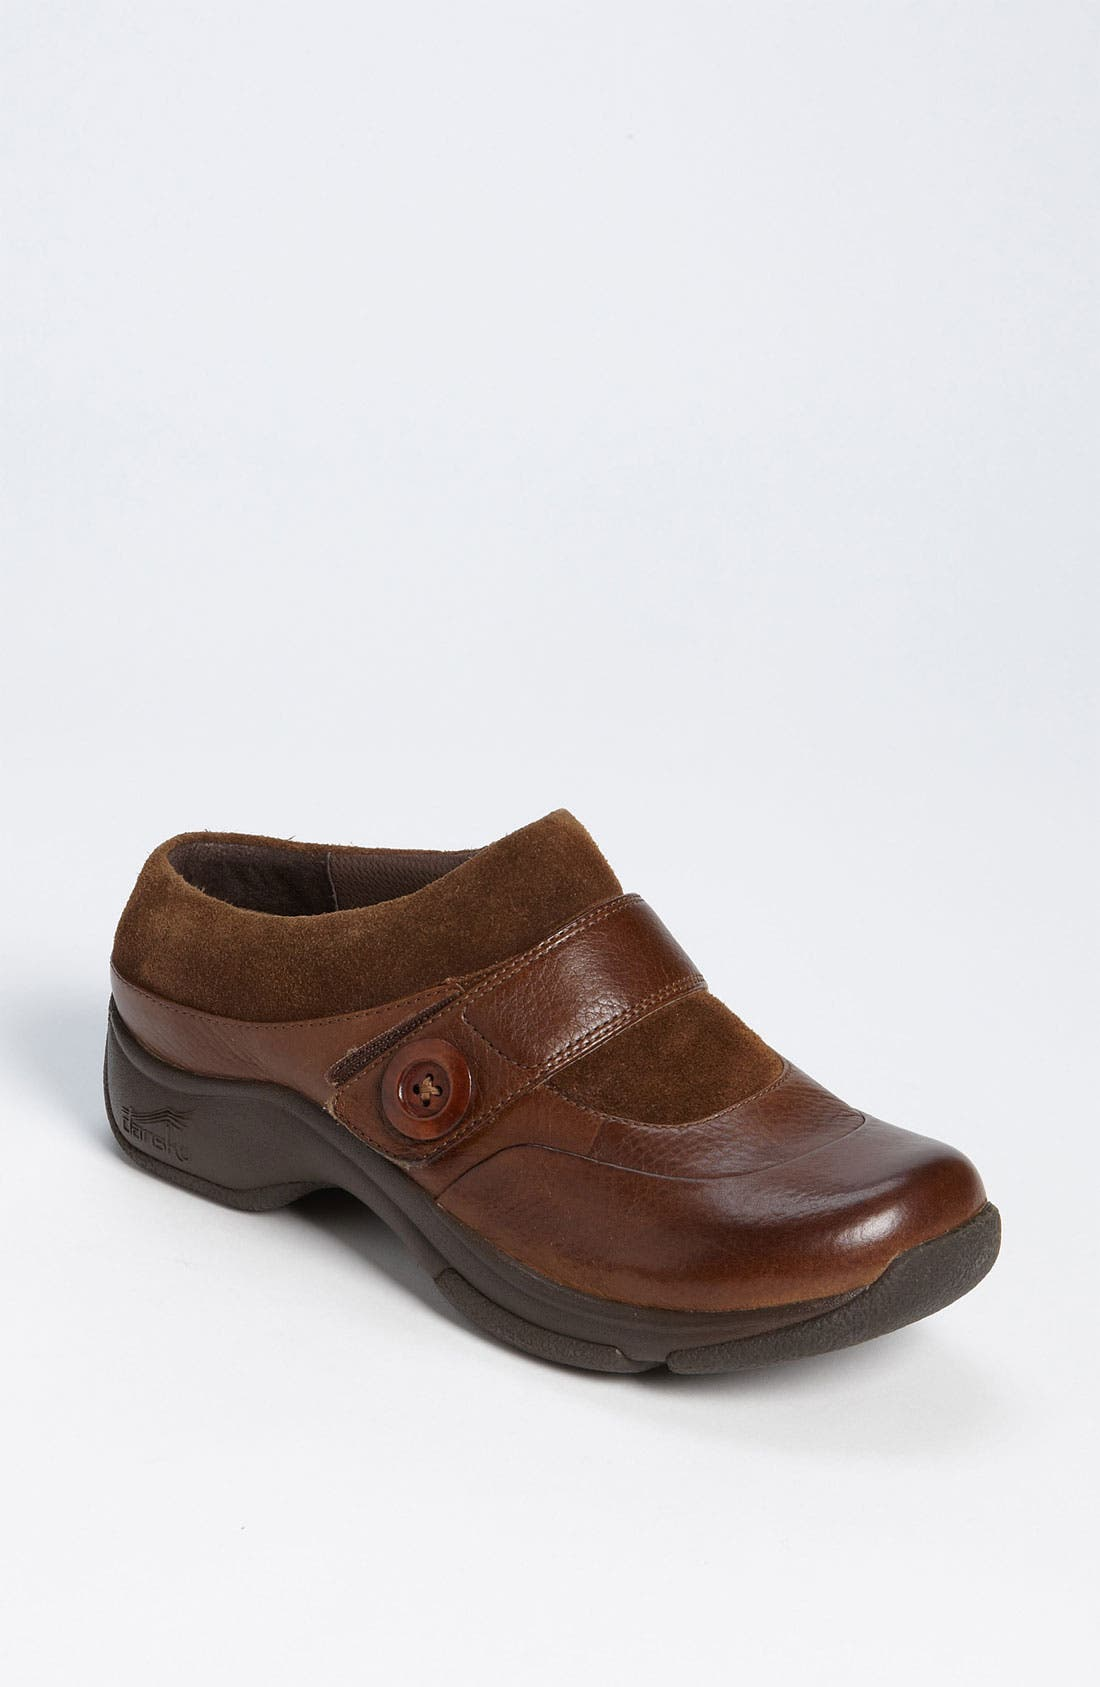 Alternate Image 1 Selected - Dansko 'Kaya' Clog